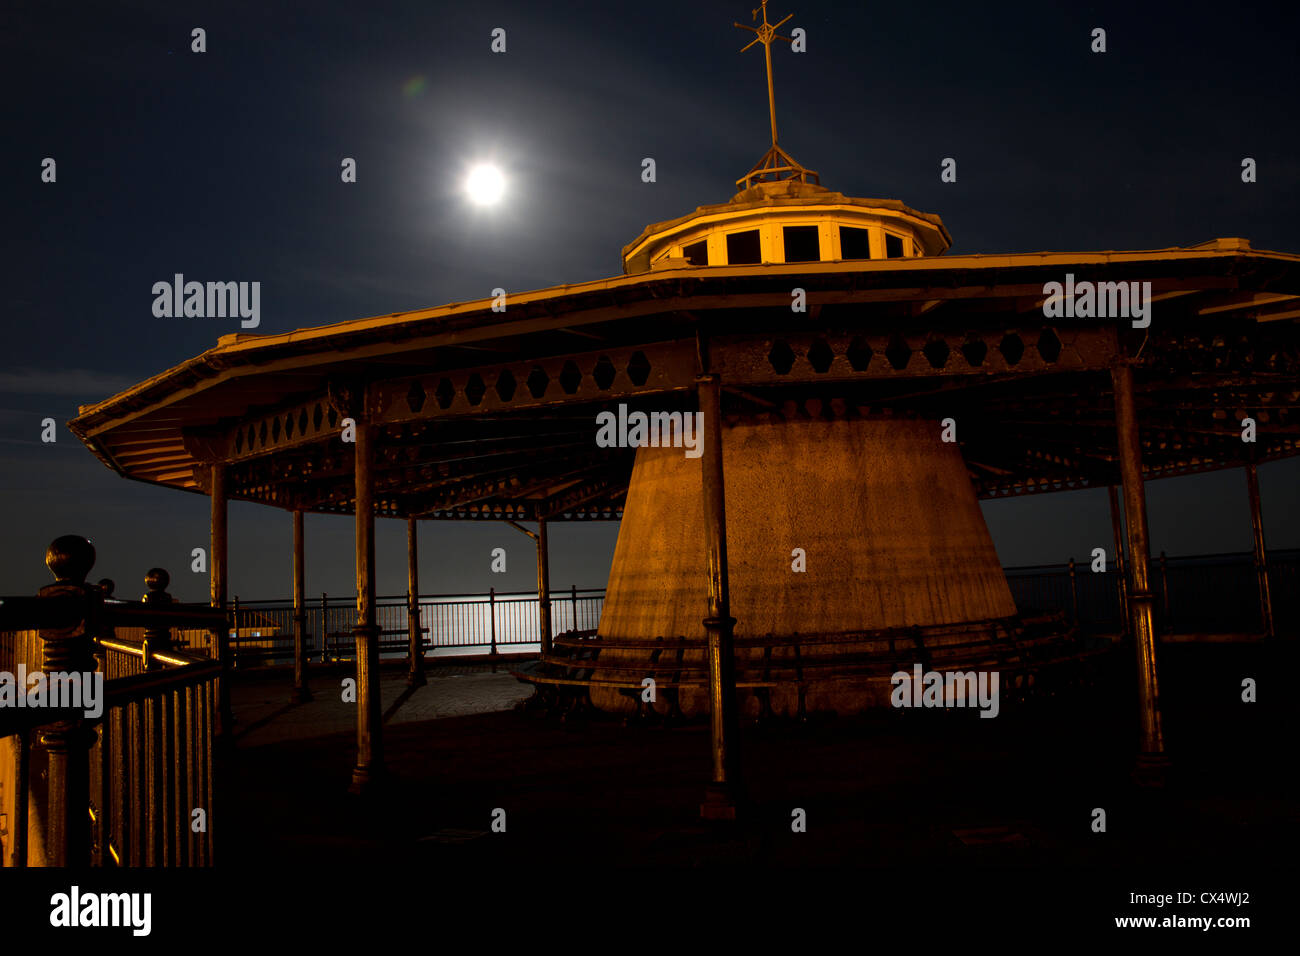 Ventnor bandstand at night. - Stock Image